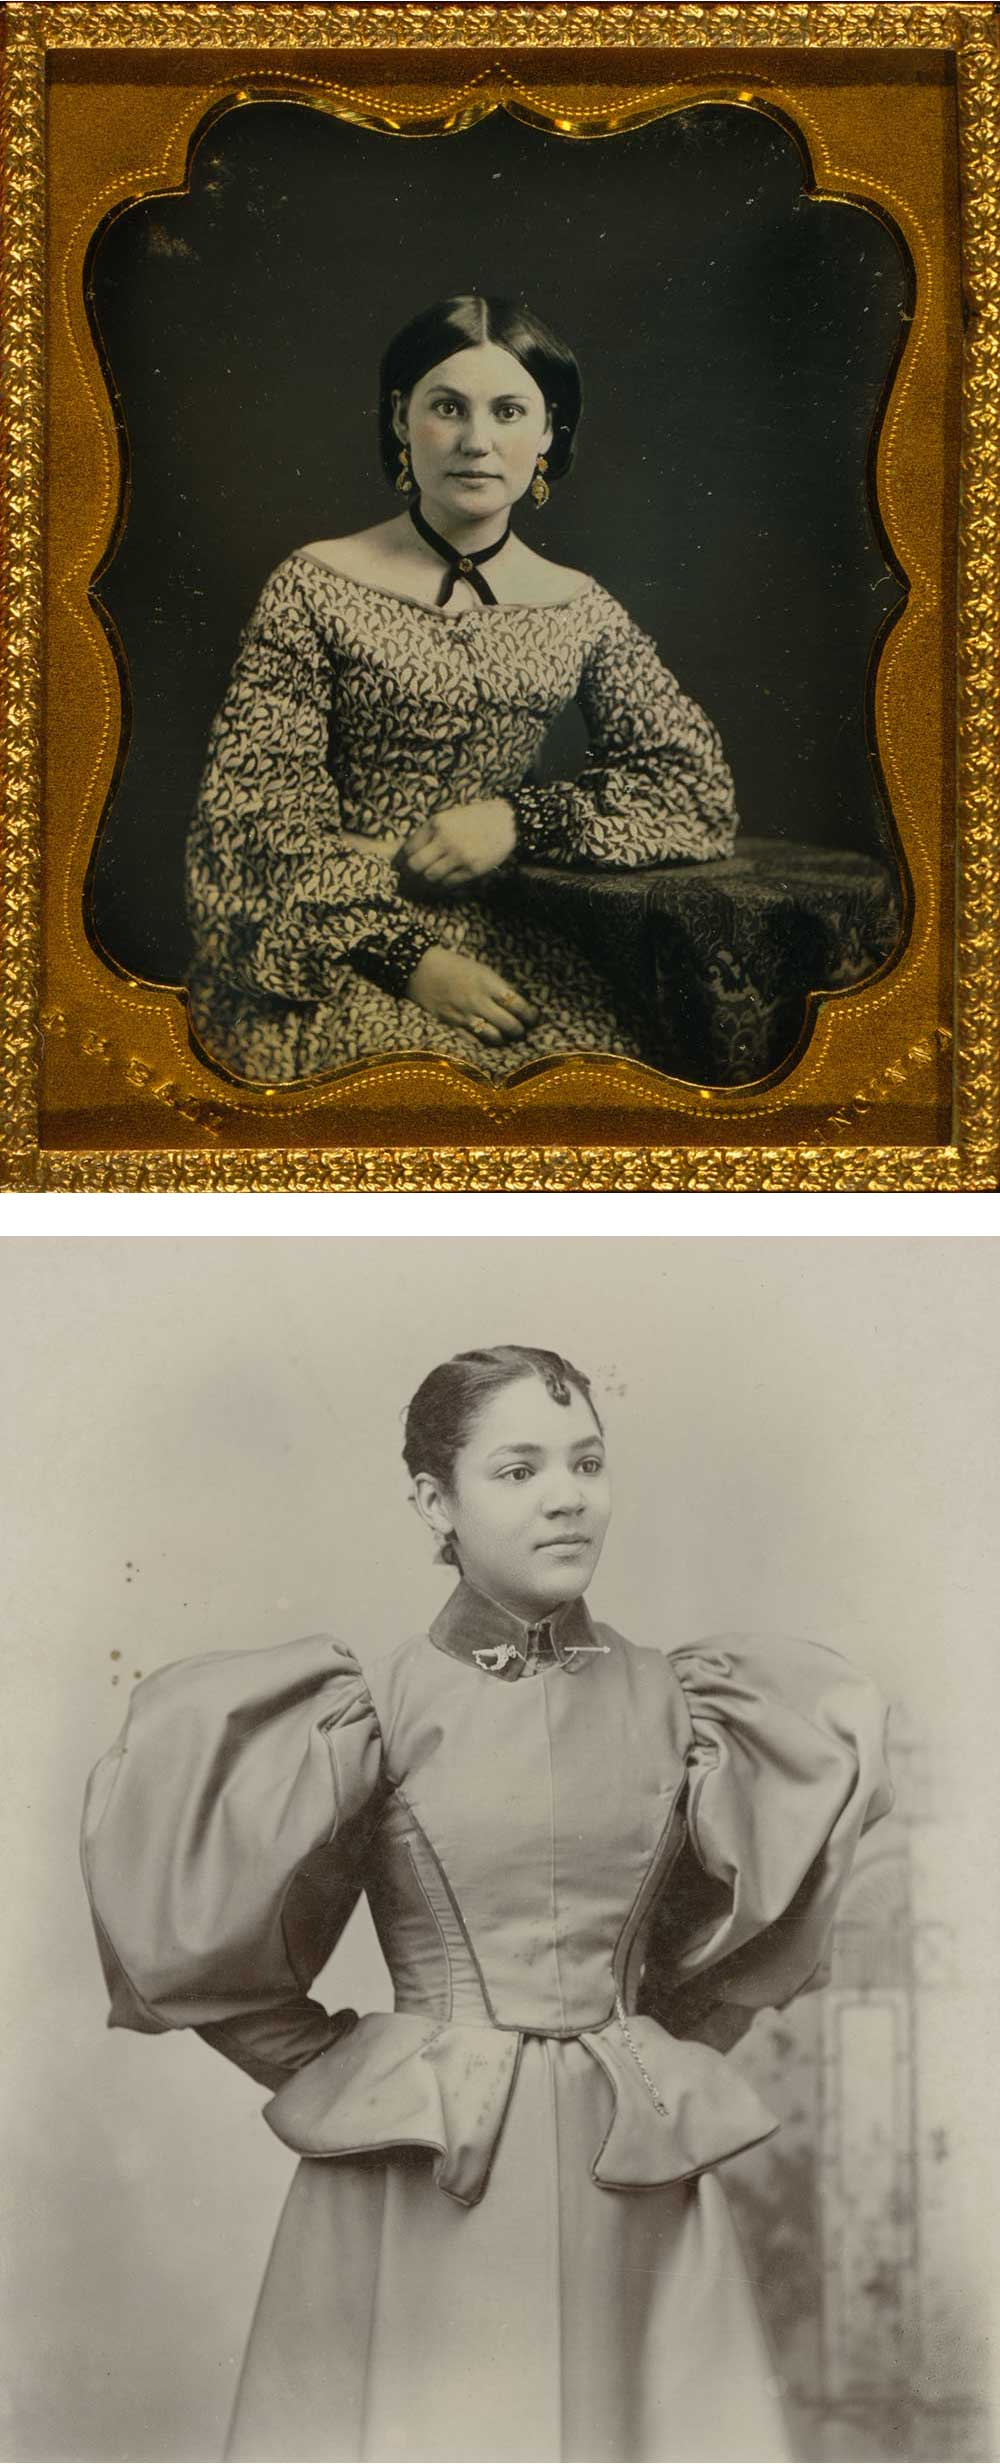 Top: Unidentified woman, c. 1847. Photograph by James Presley Ball. Bottom: Unidentified Woman, by J.P. Ball & Son, c. 1887.